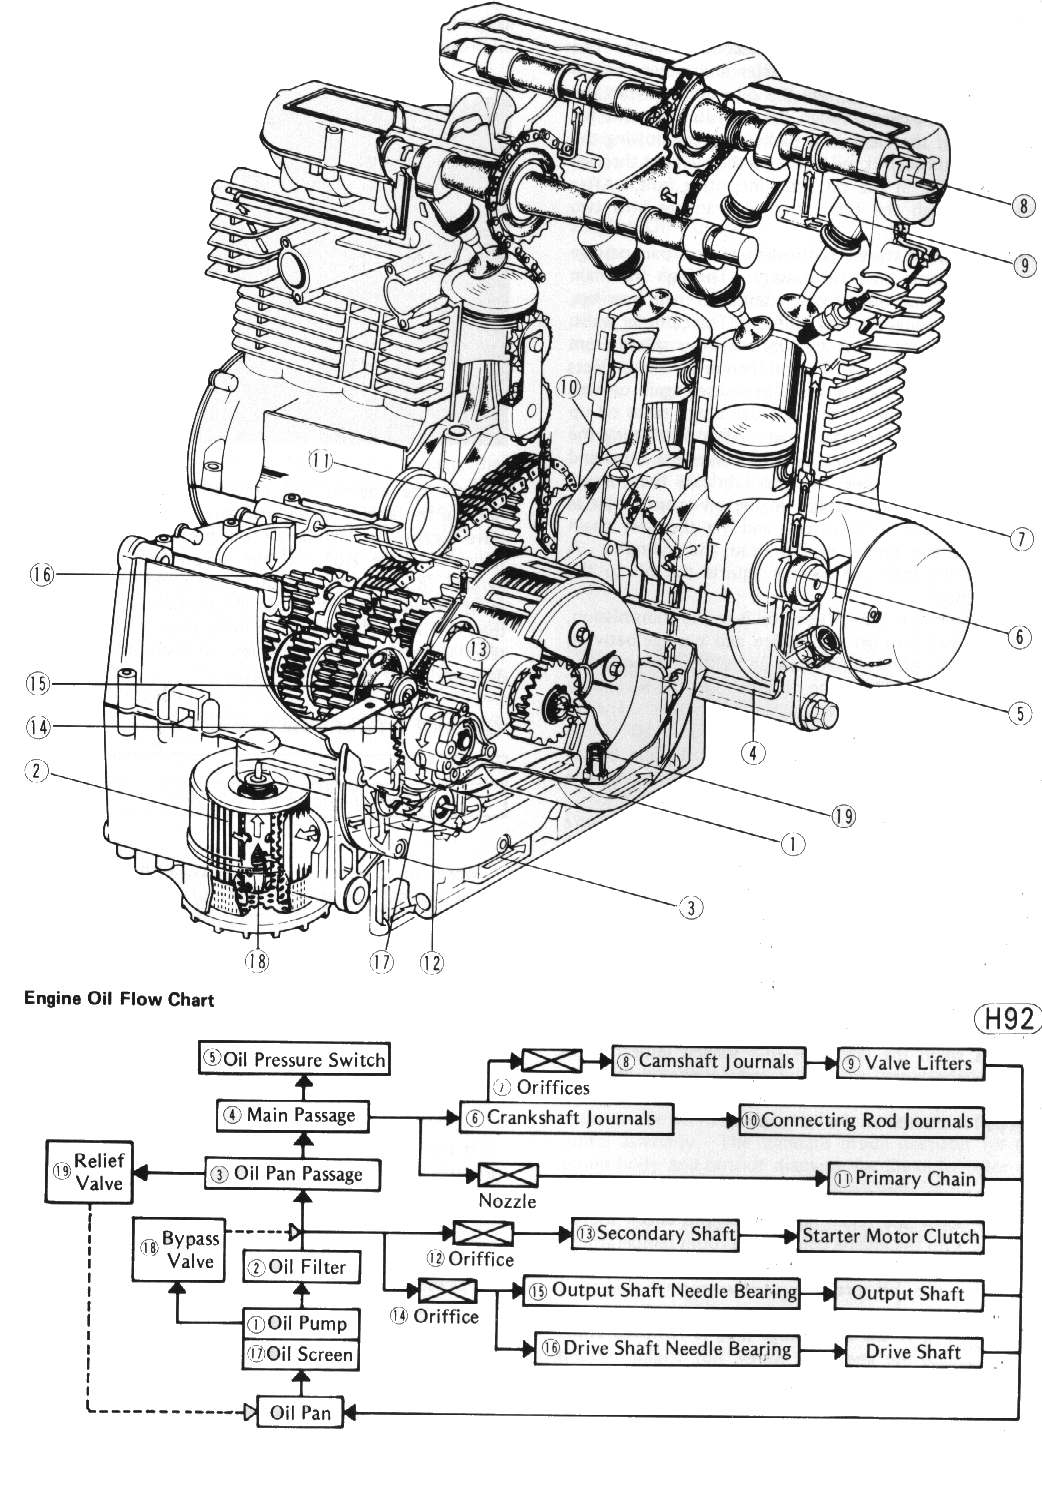 50 S Wiring Diagrams Gibson 50s Schematic Dan Motorcycle Four Stroke Oil Flow Vintage Les Paul Diagram